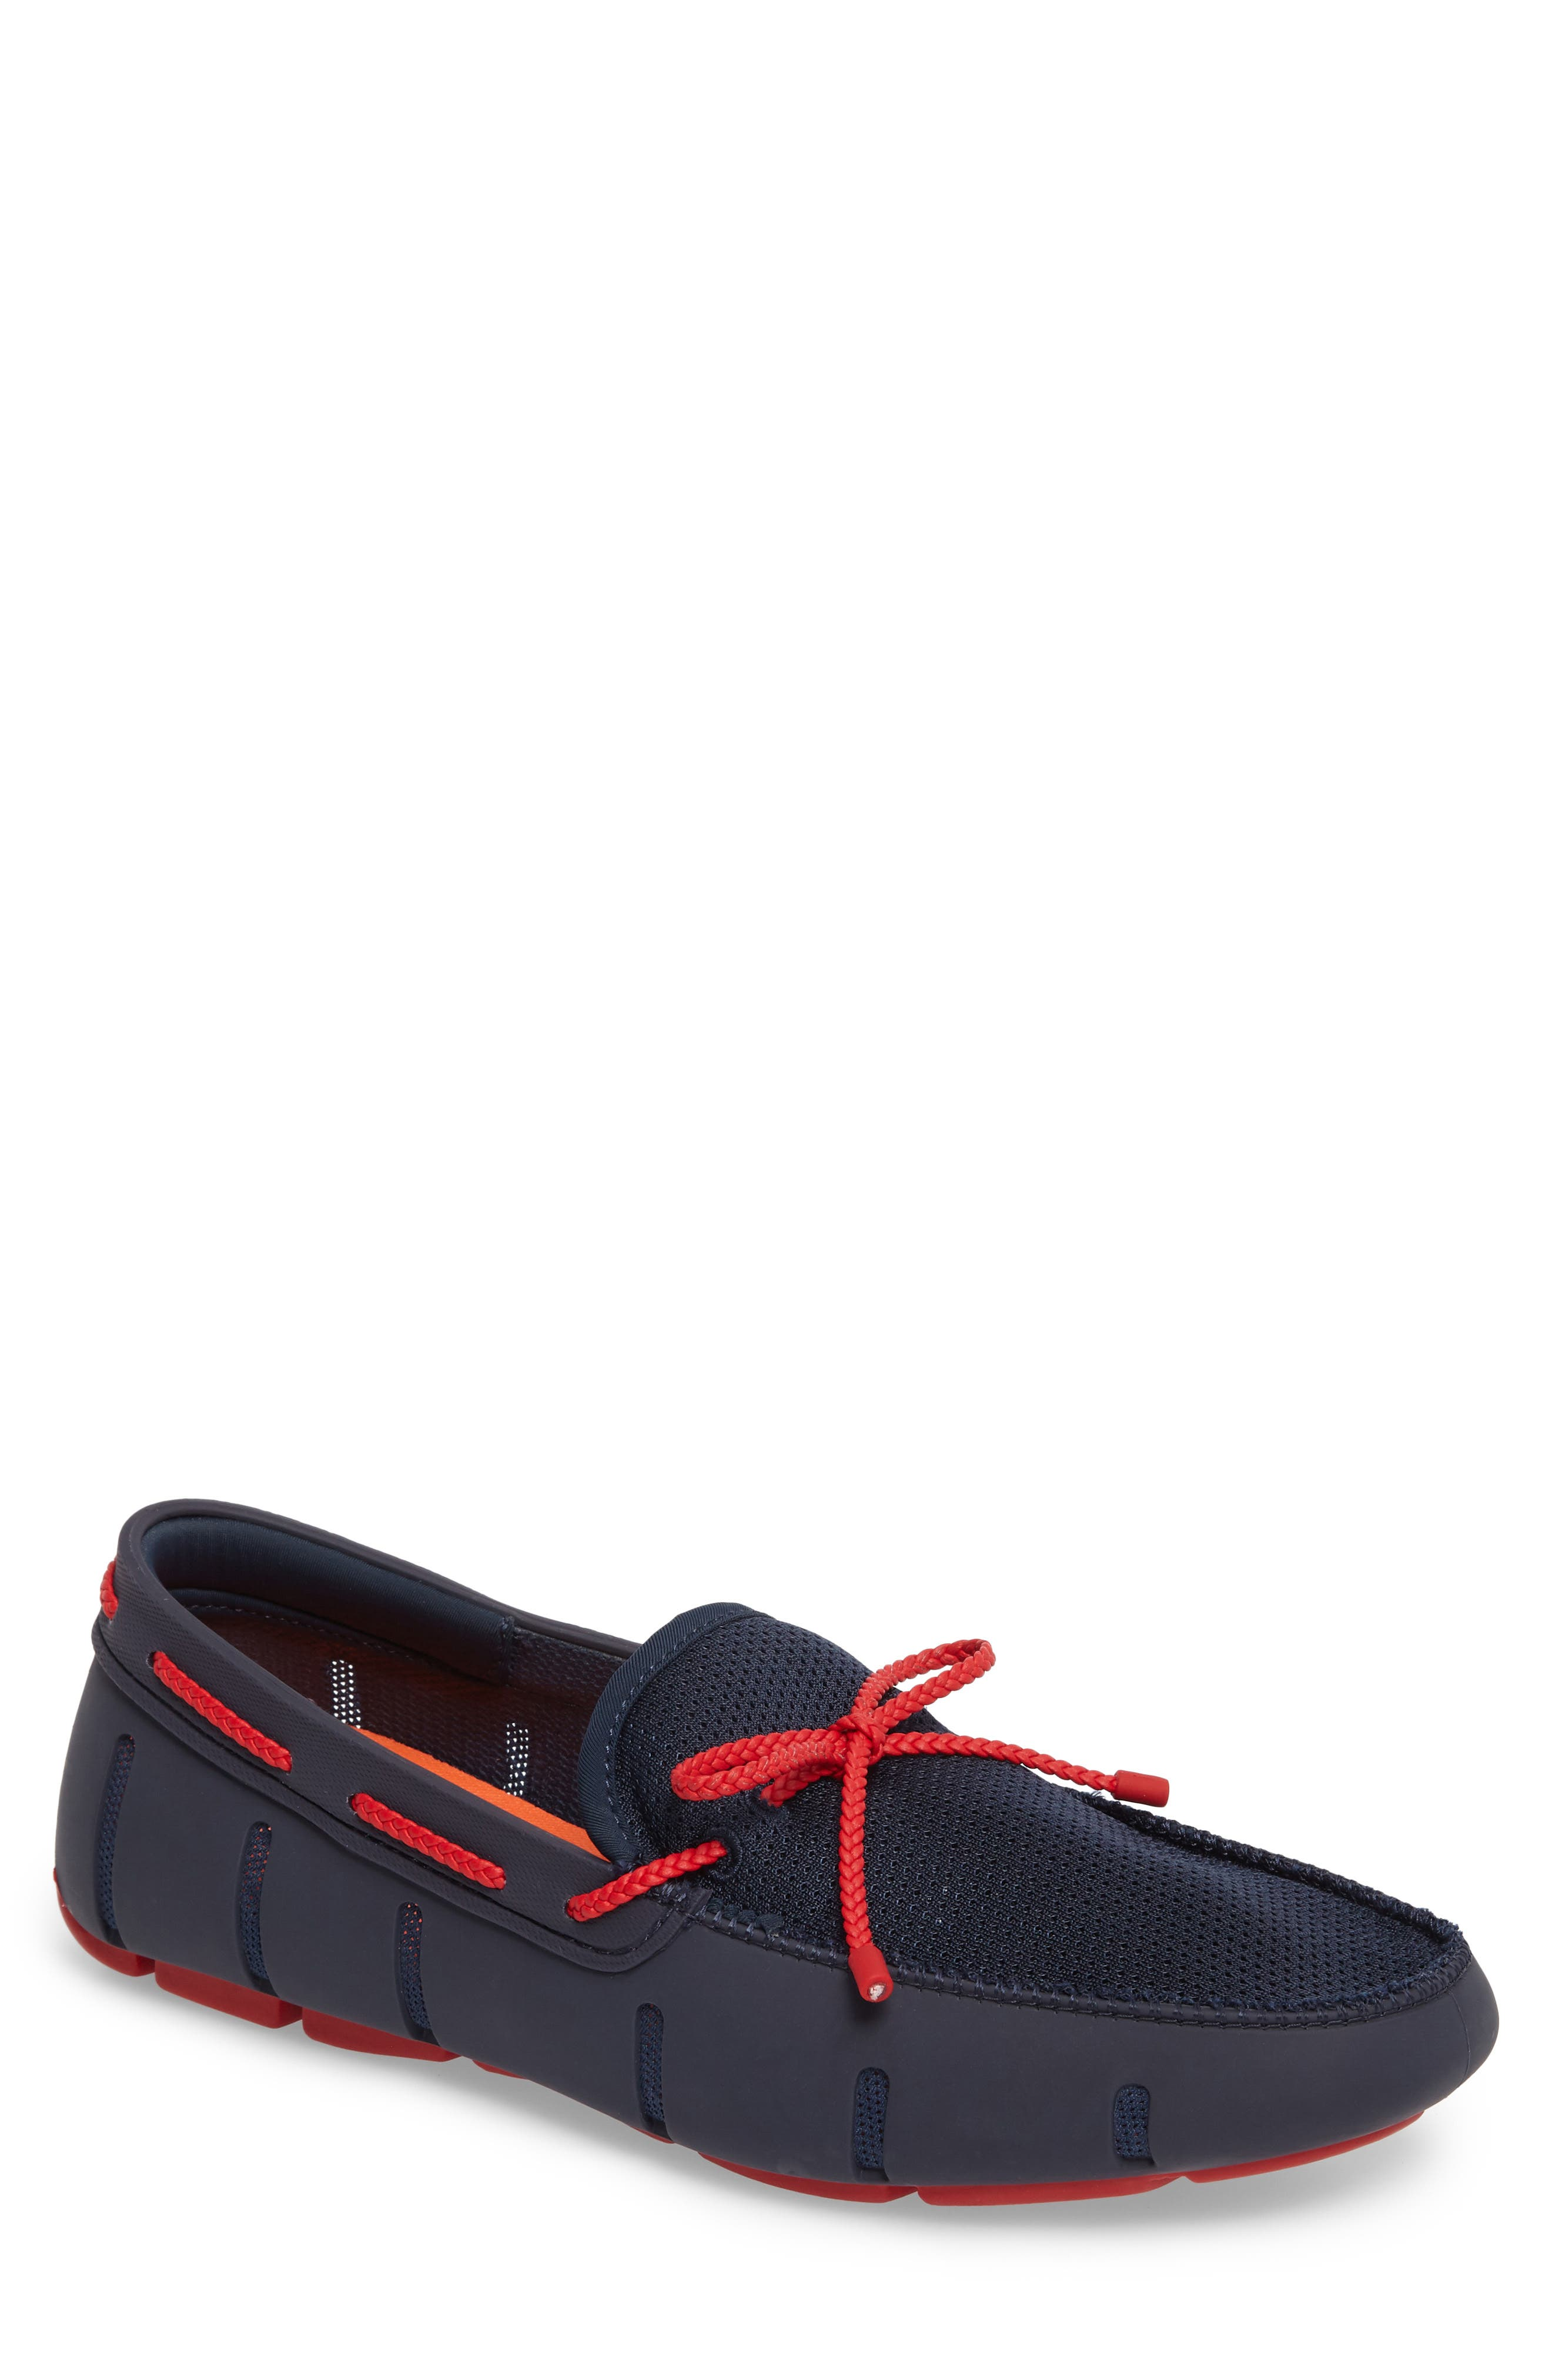 Main Image - Swims Lace Loafer